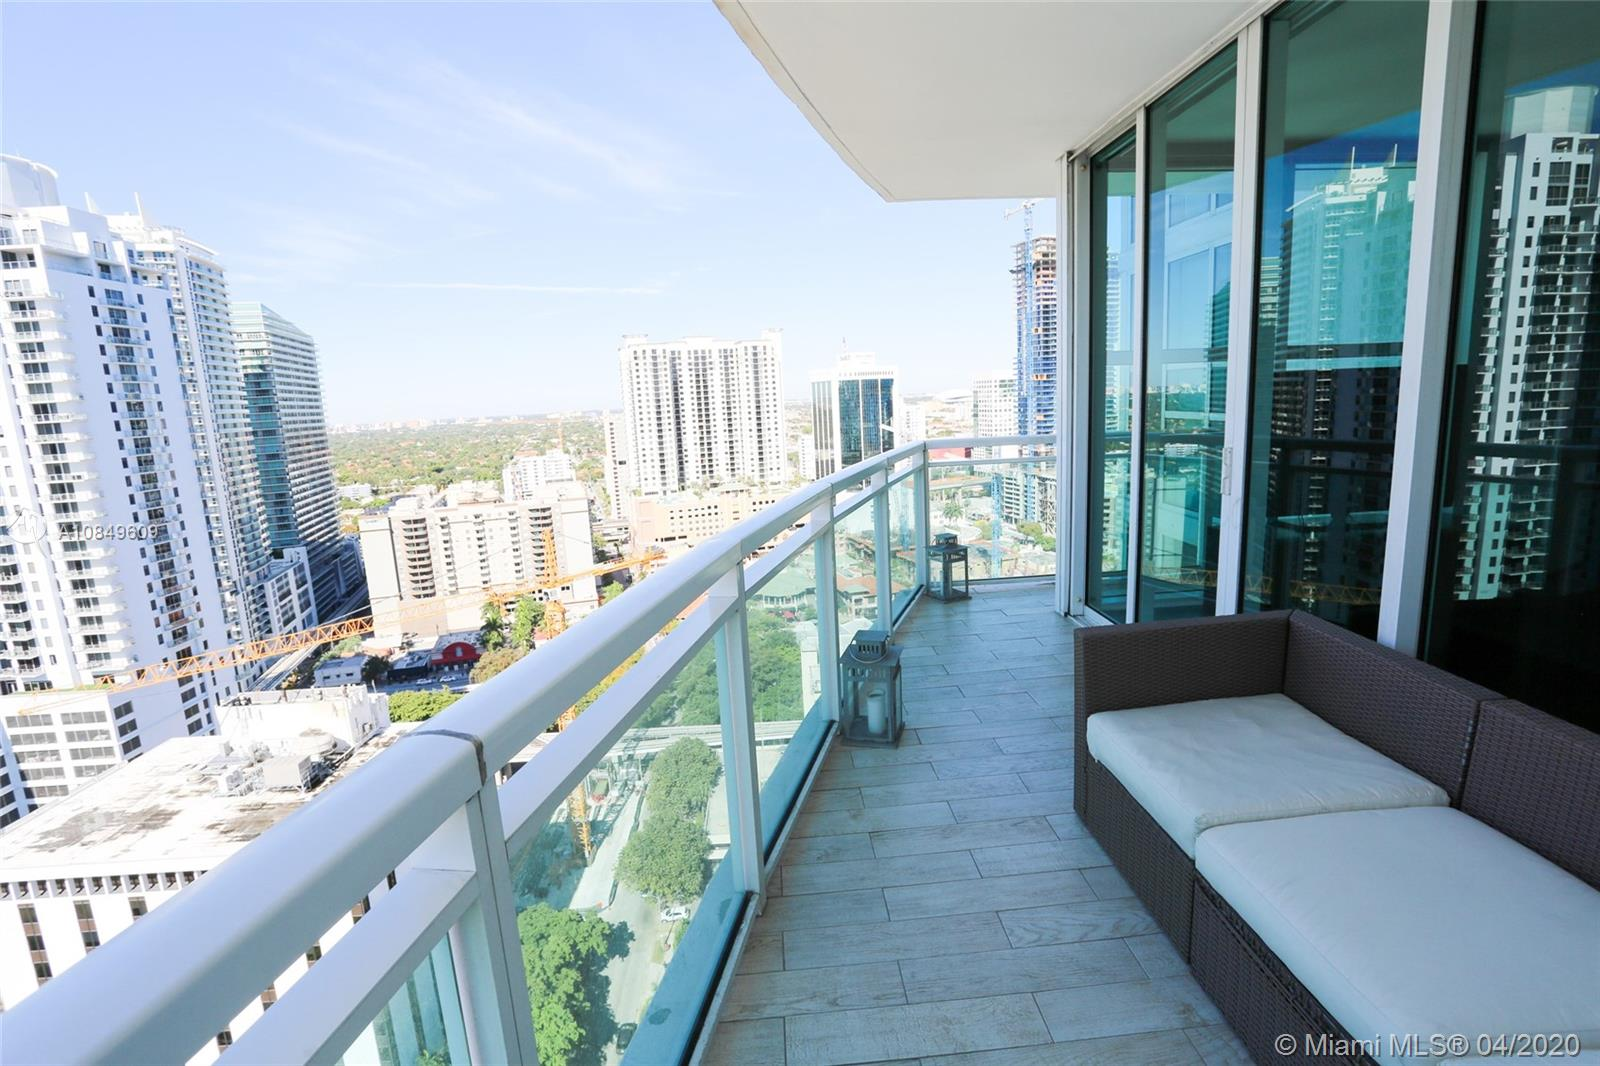 951 Brickell Ave # 2711, Miami, Florida 33131, 2 Bedrooms Bedrooms, ,3 BathroomsBathrooms,Residential,For Sale,951 Brickell Ave # 2711,A10849609